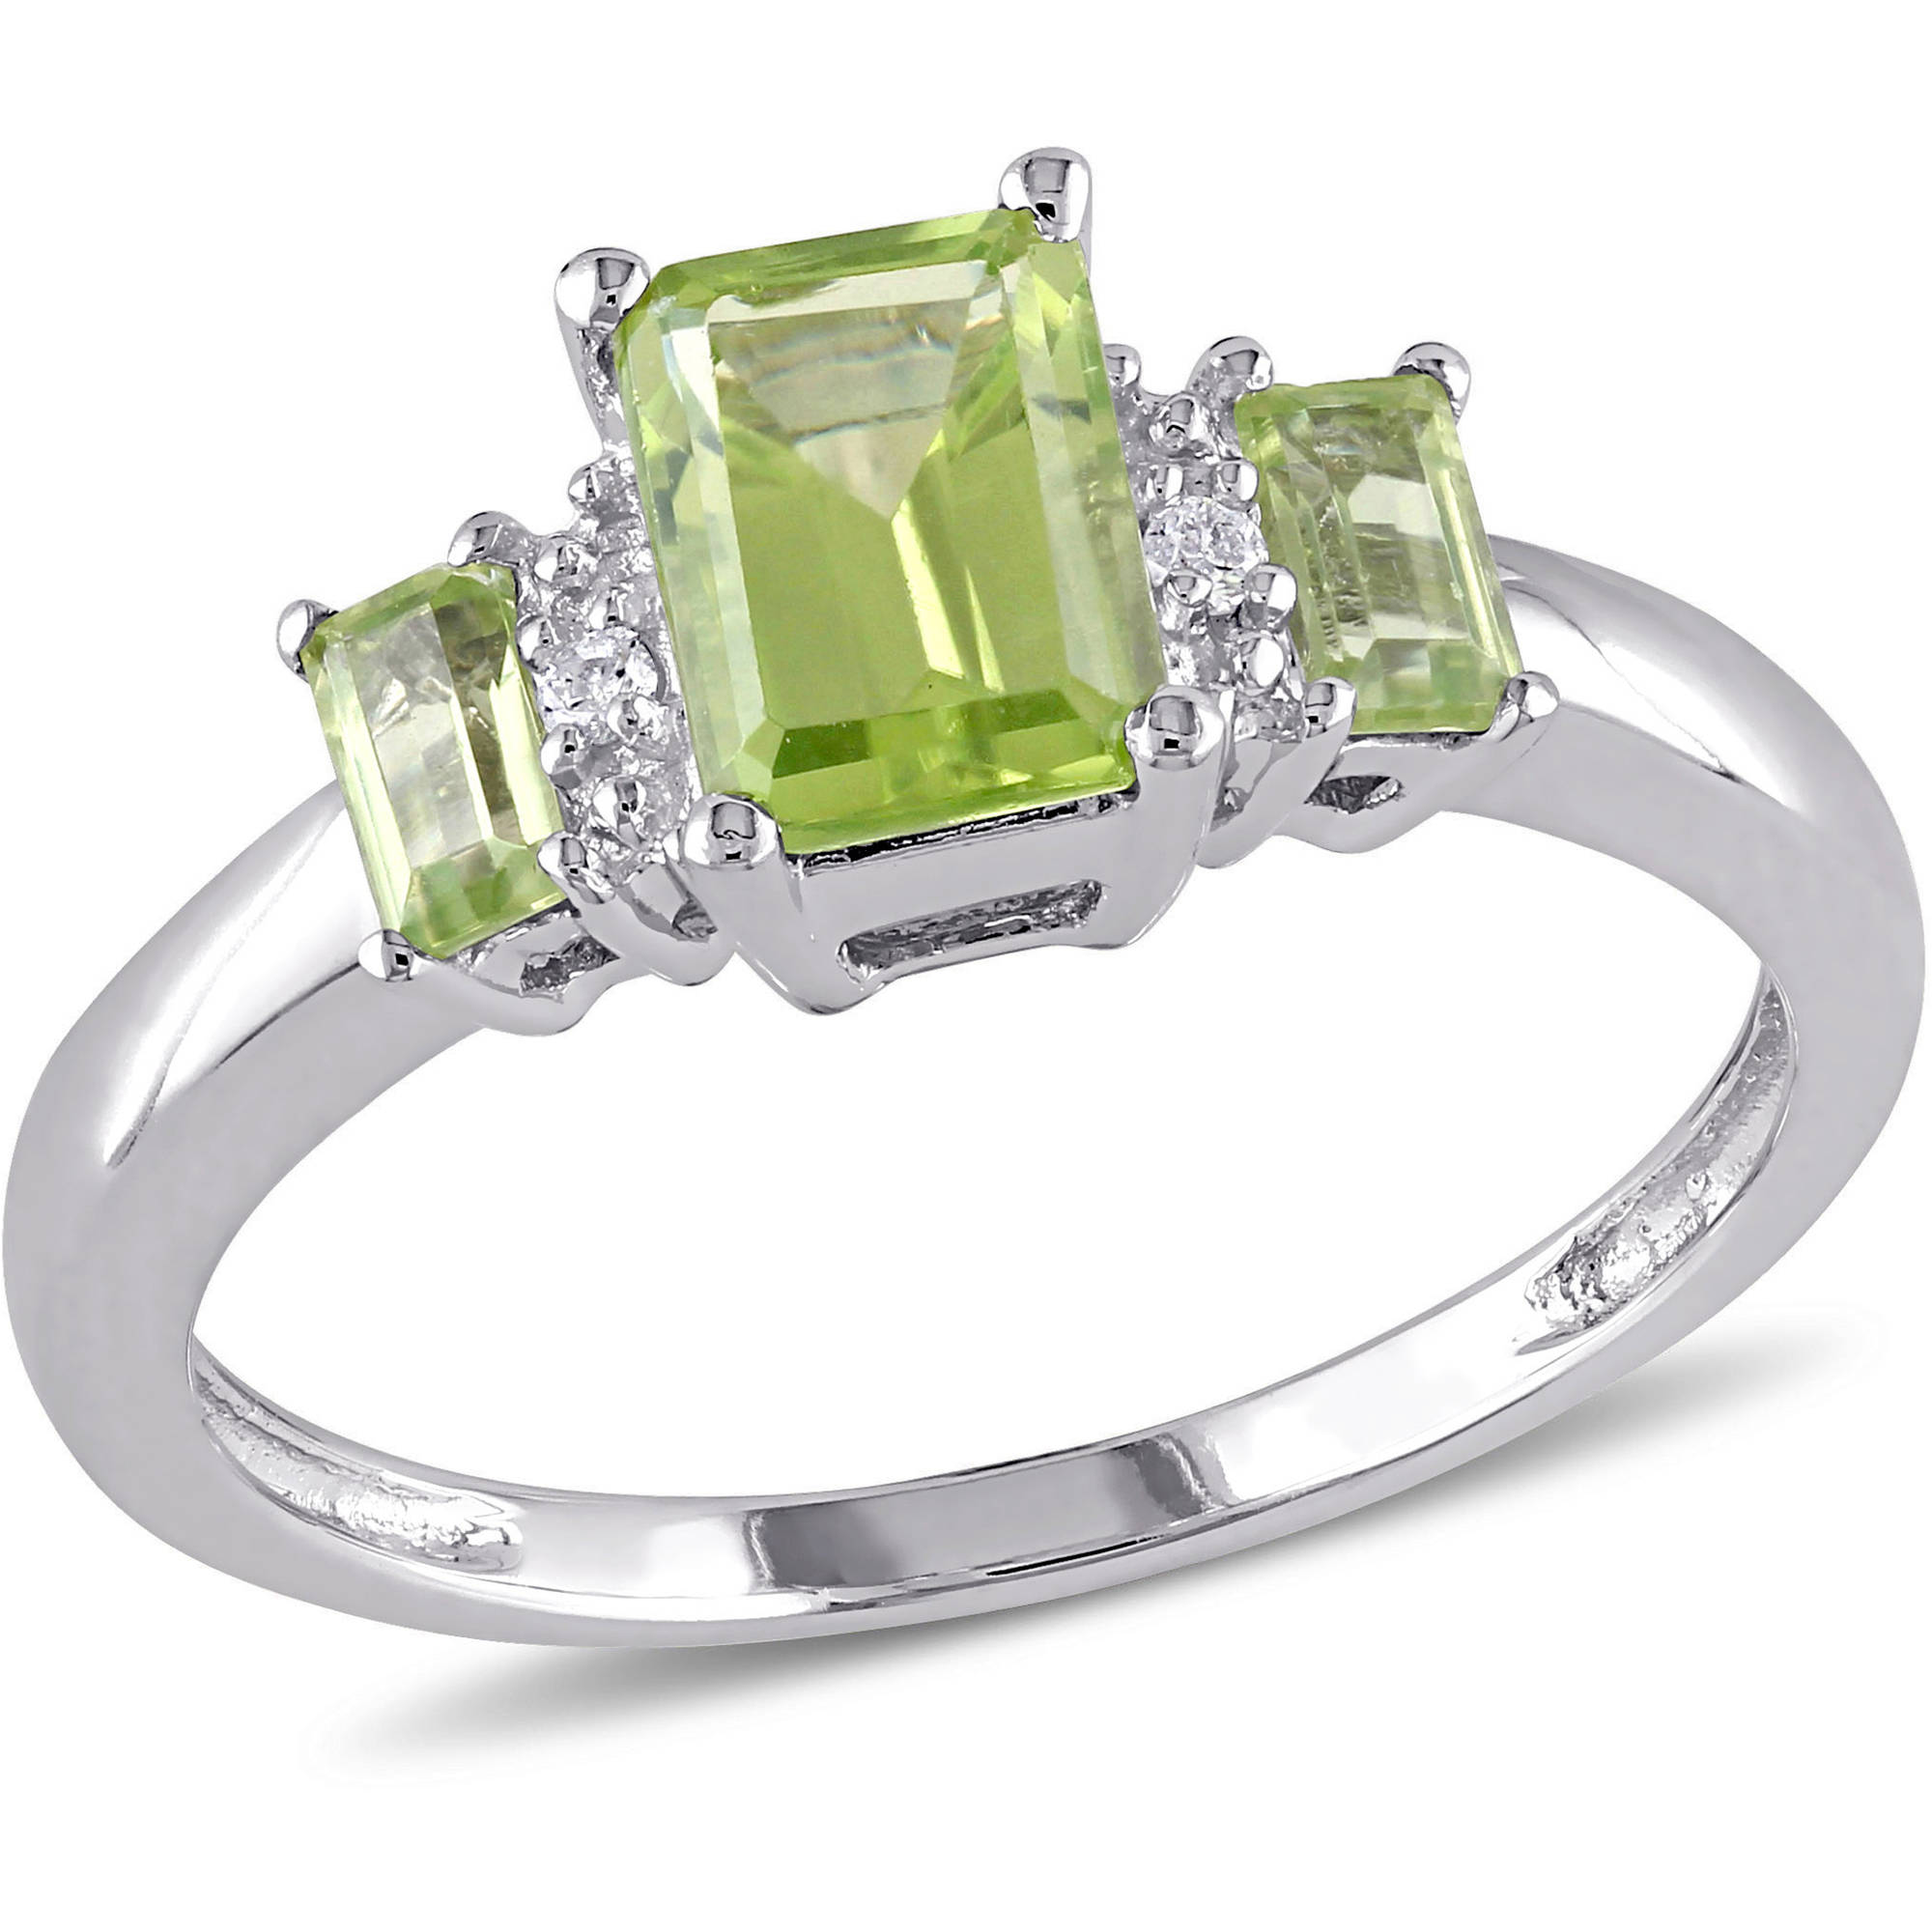 Tangelo 1-1 4 Carat T.G.W. Peridot and Diamond-Accent 10kt White Gold Three-Stone Ring by Delmar Manufacturing LLC